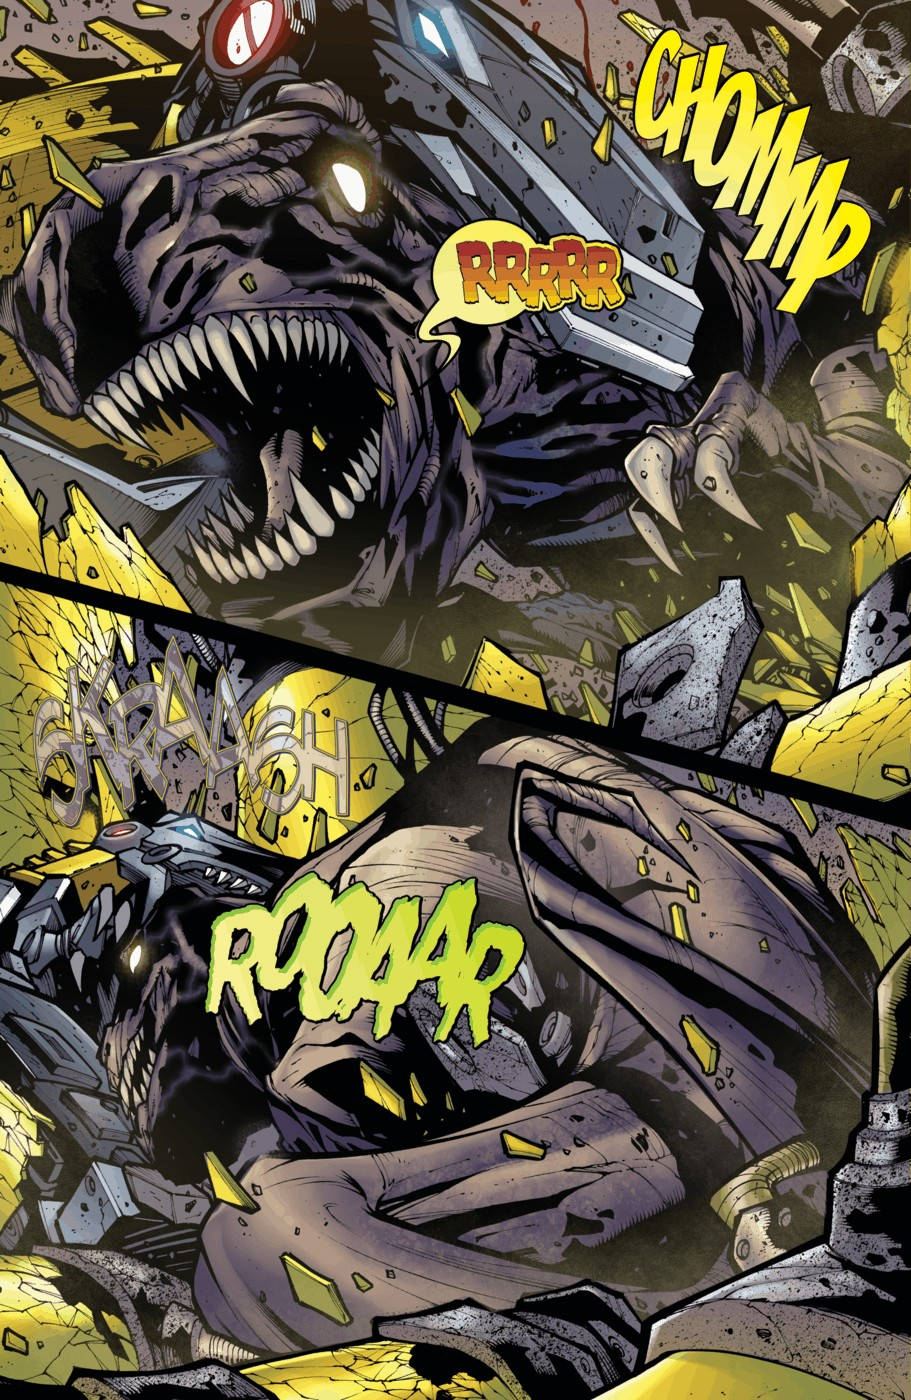 Read online Transformers Prime: Beast Hunters comic -  Issue #4 - 7